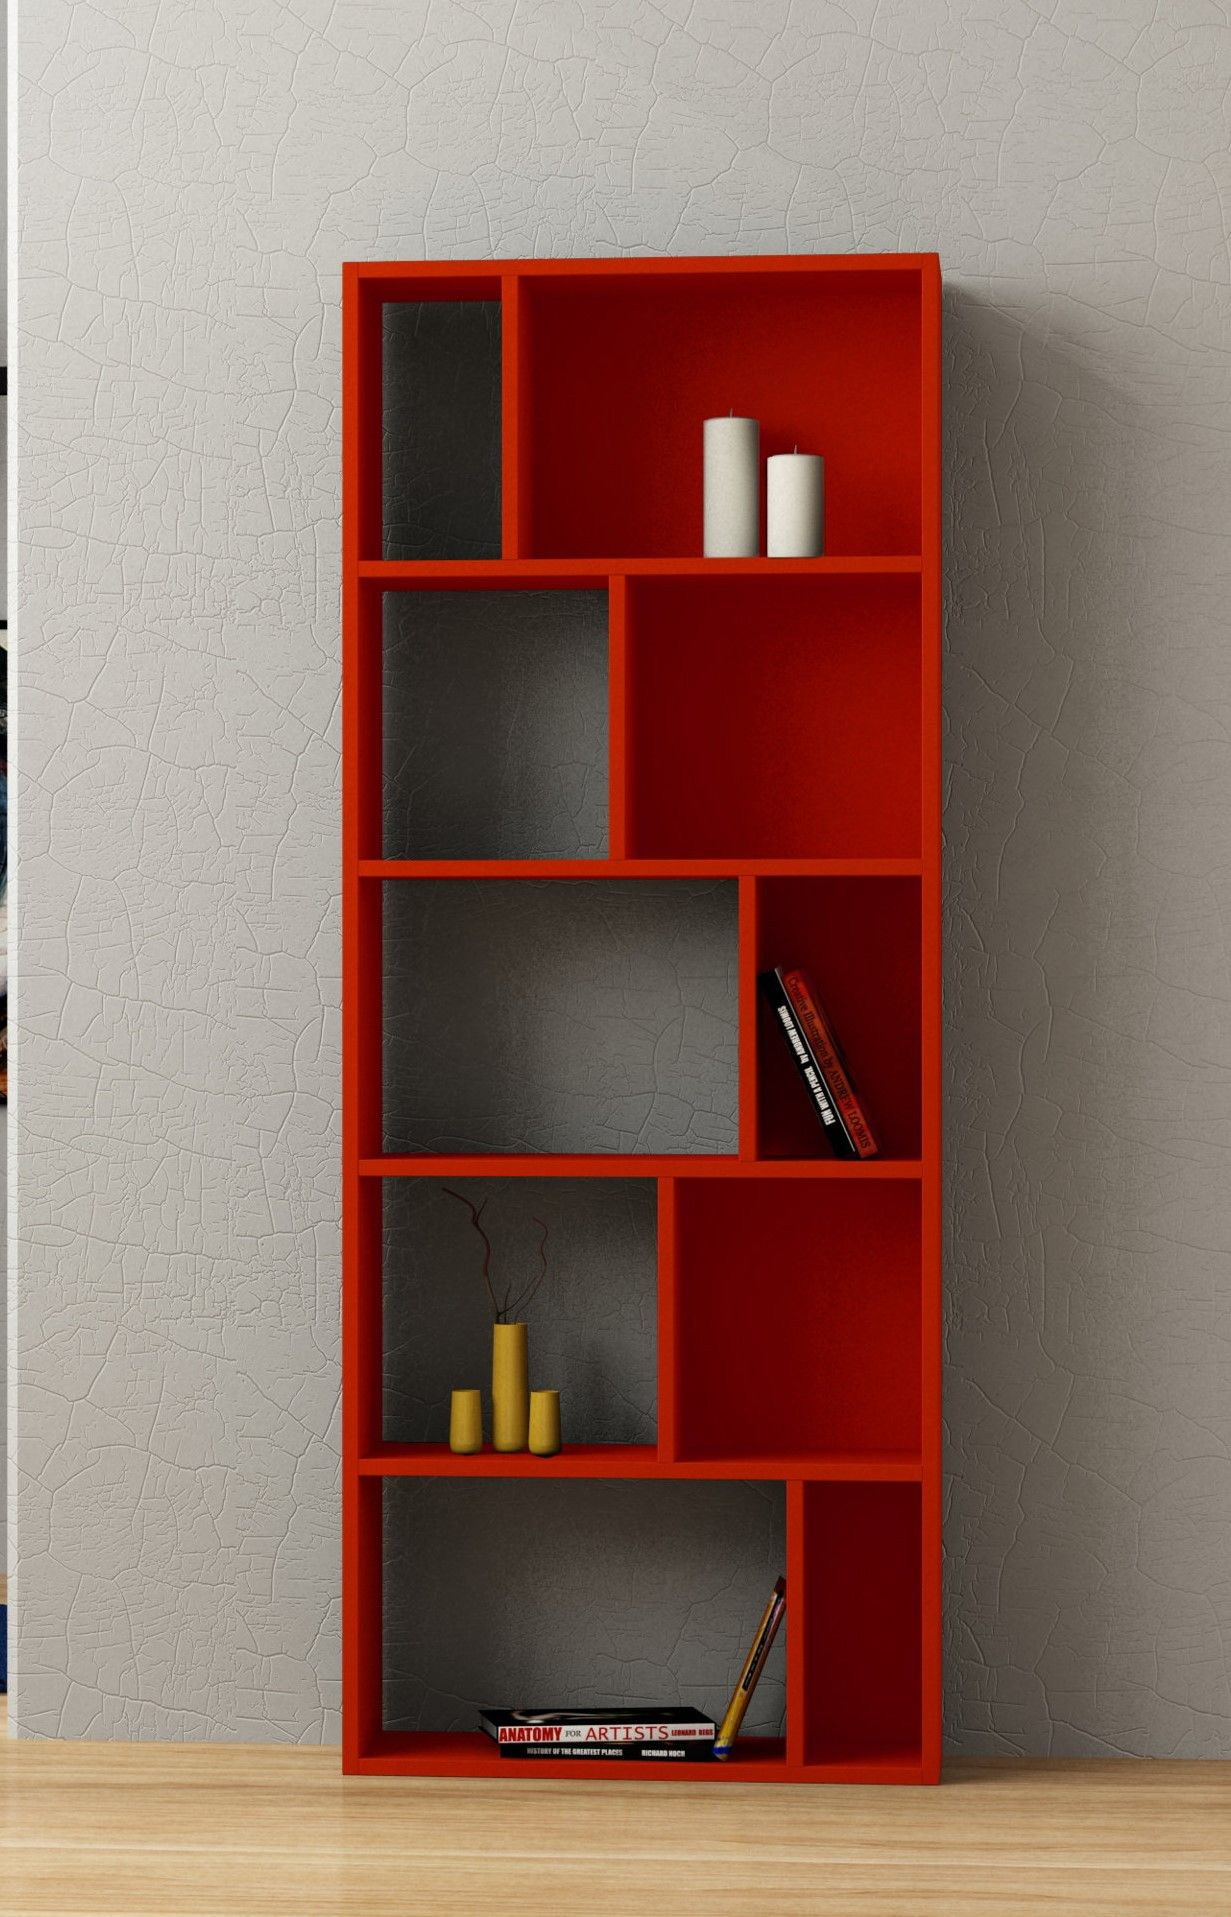 Got red bookcase in modern design with